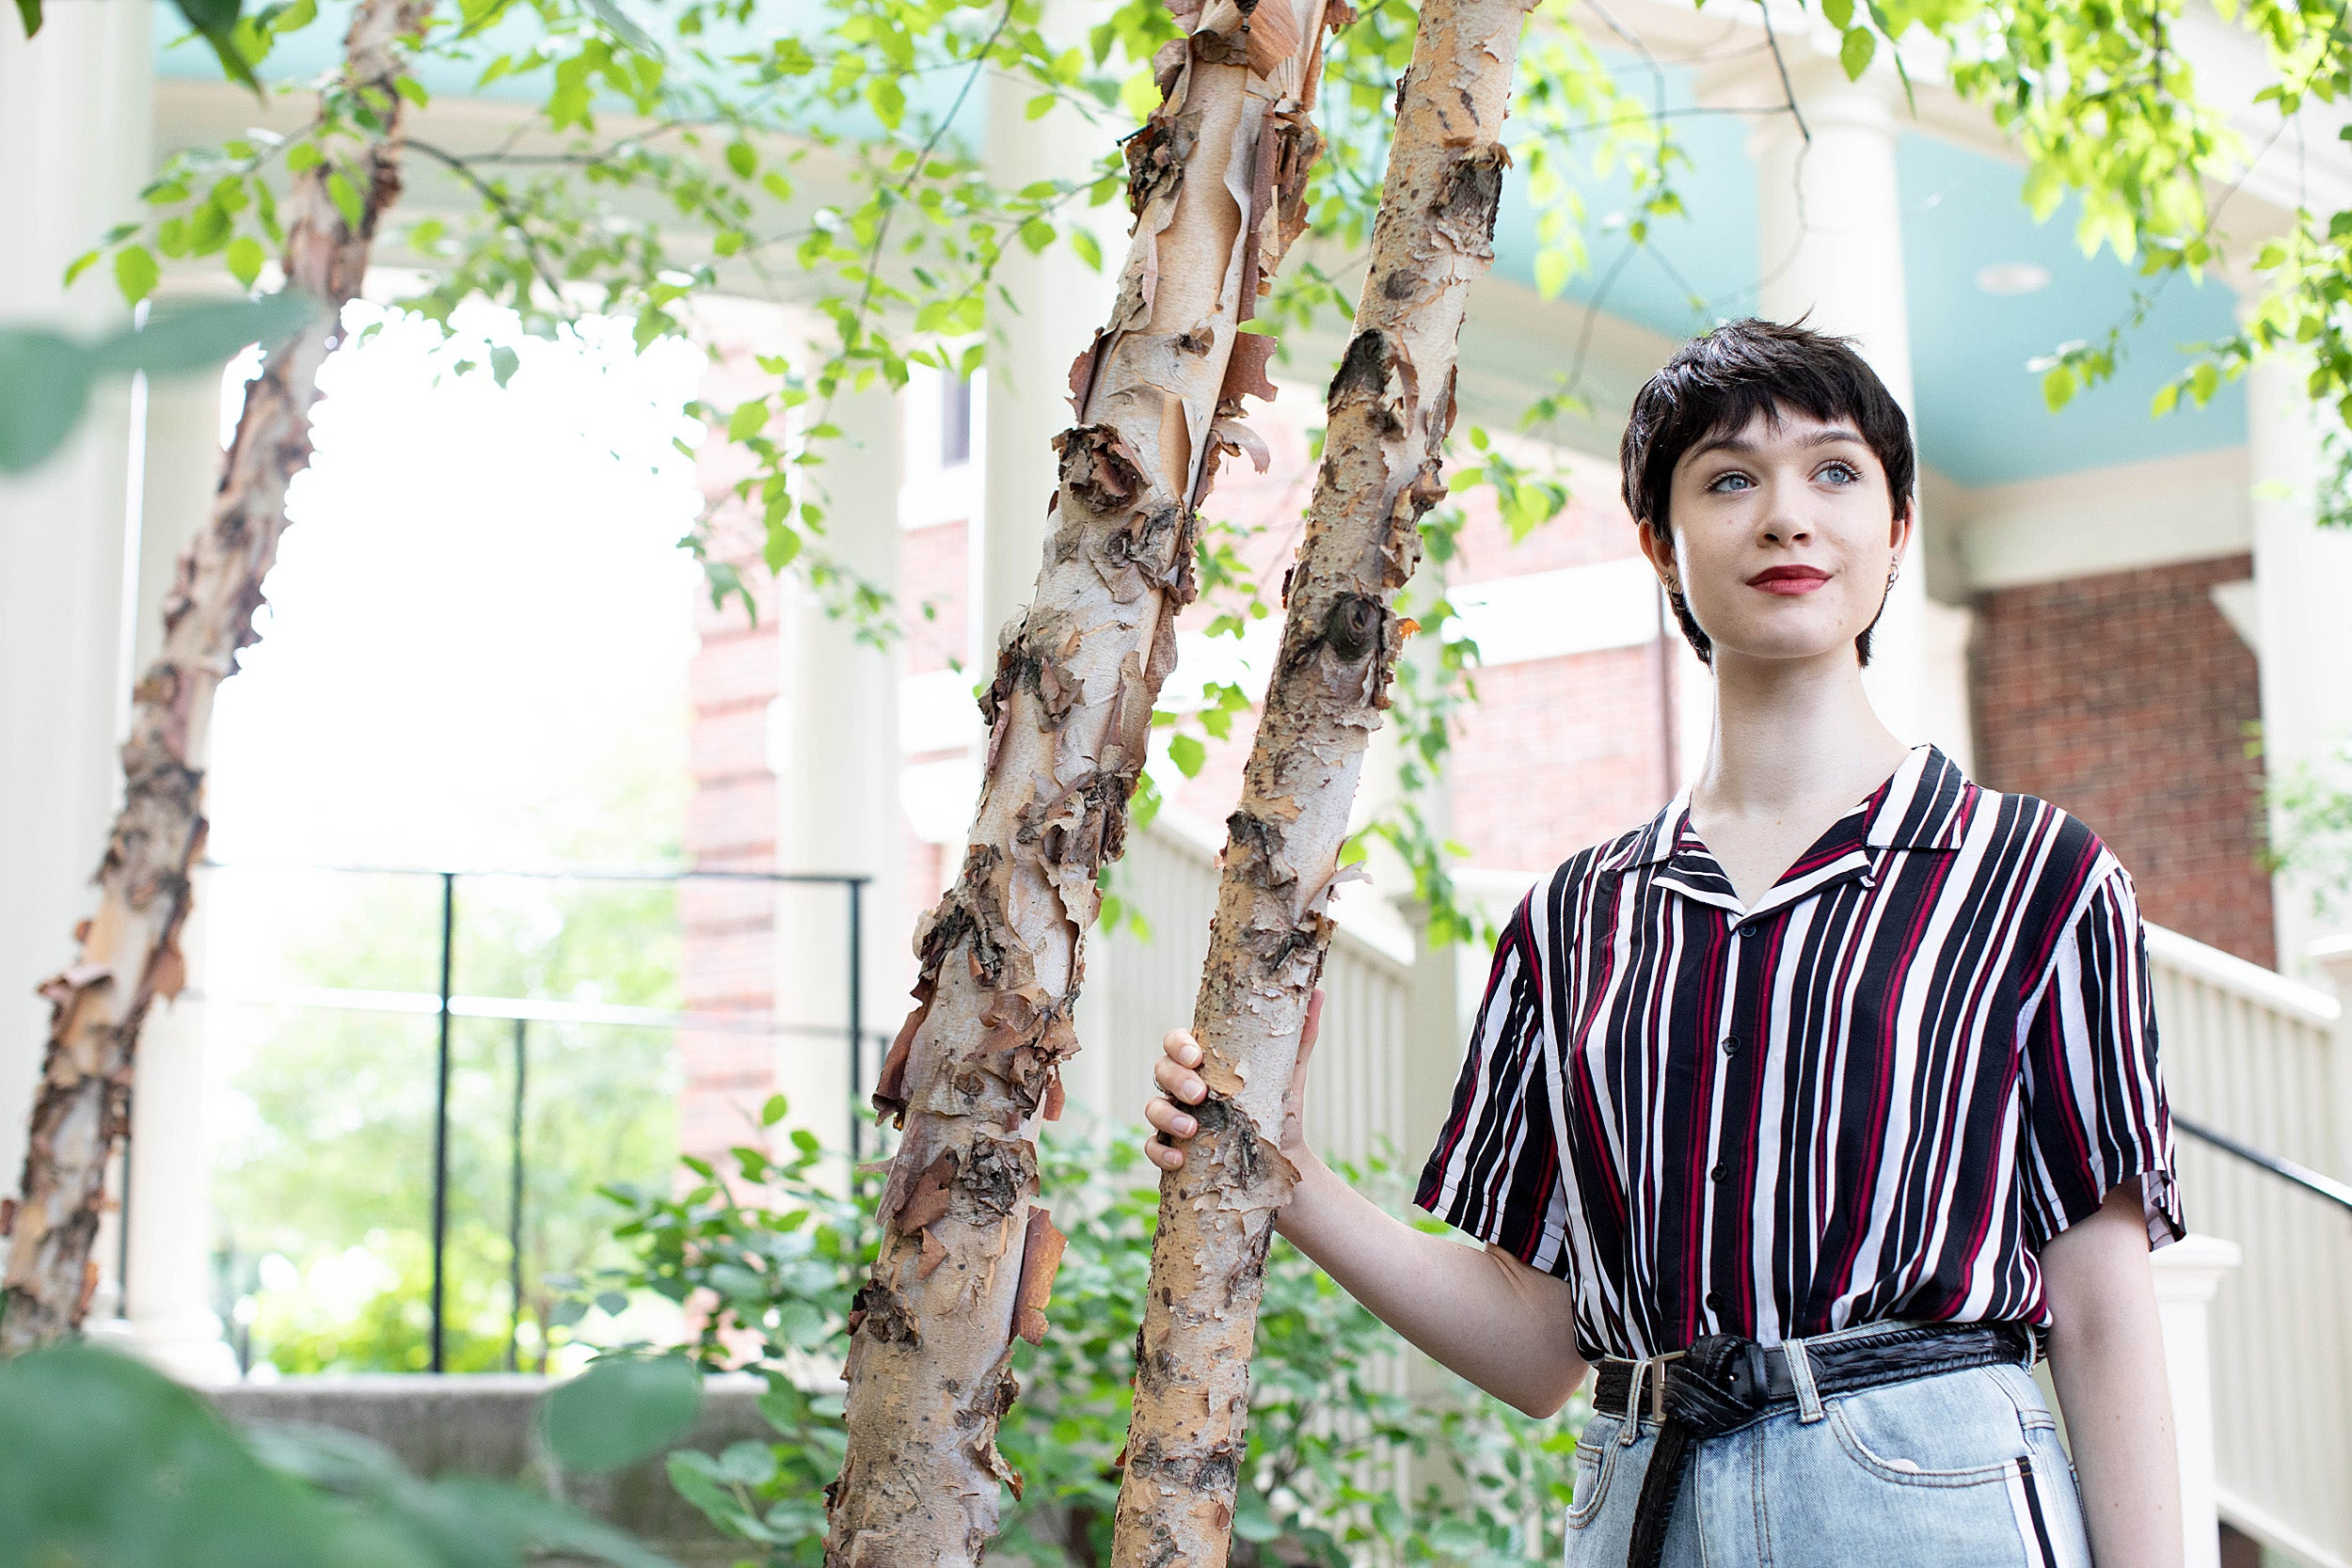 student in a striped shirt next to a tree